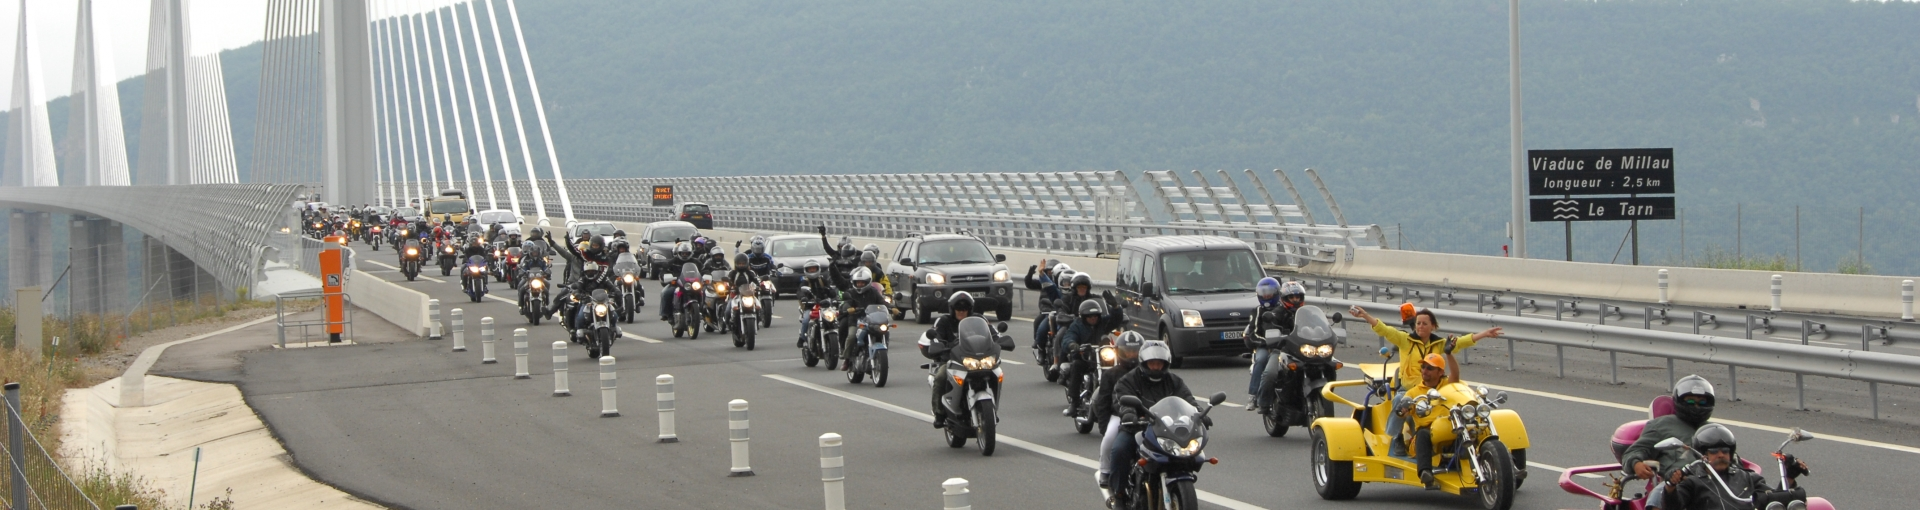 Bikers on the Millau Viaduct